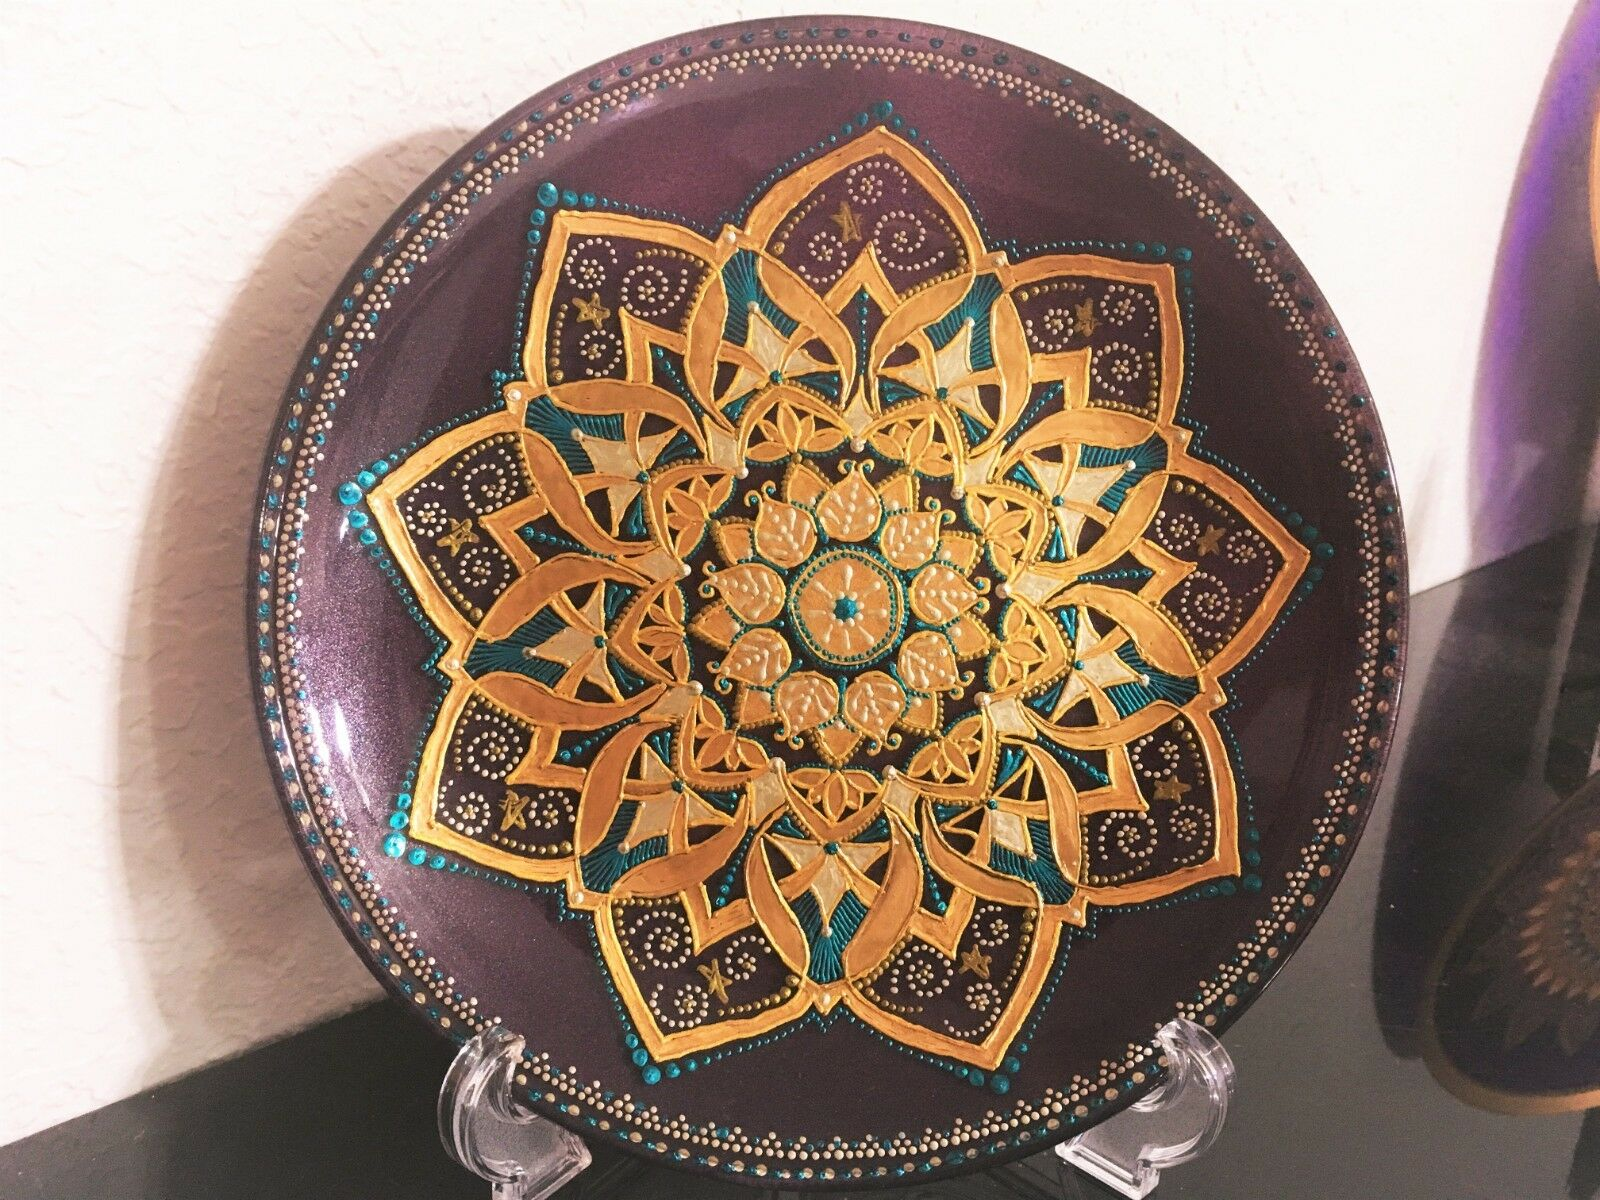 Gift Decorative Glass Plate  Mandala  - Hand Painted Home Decor Point-to-Point